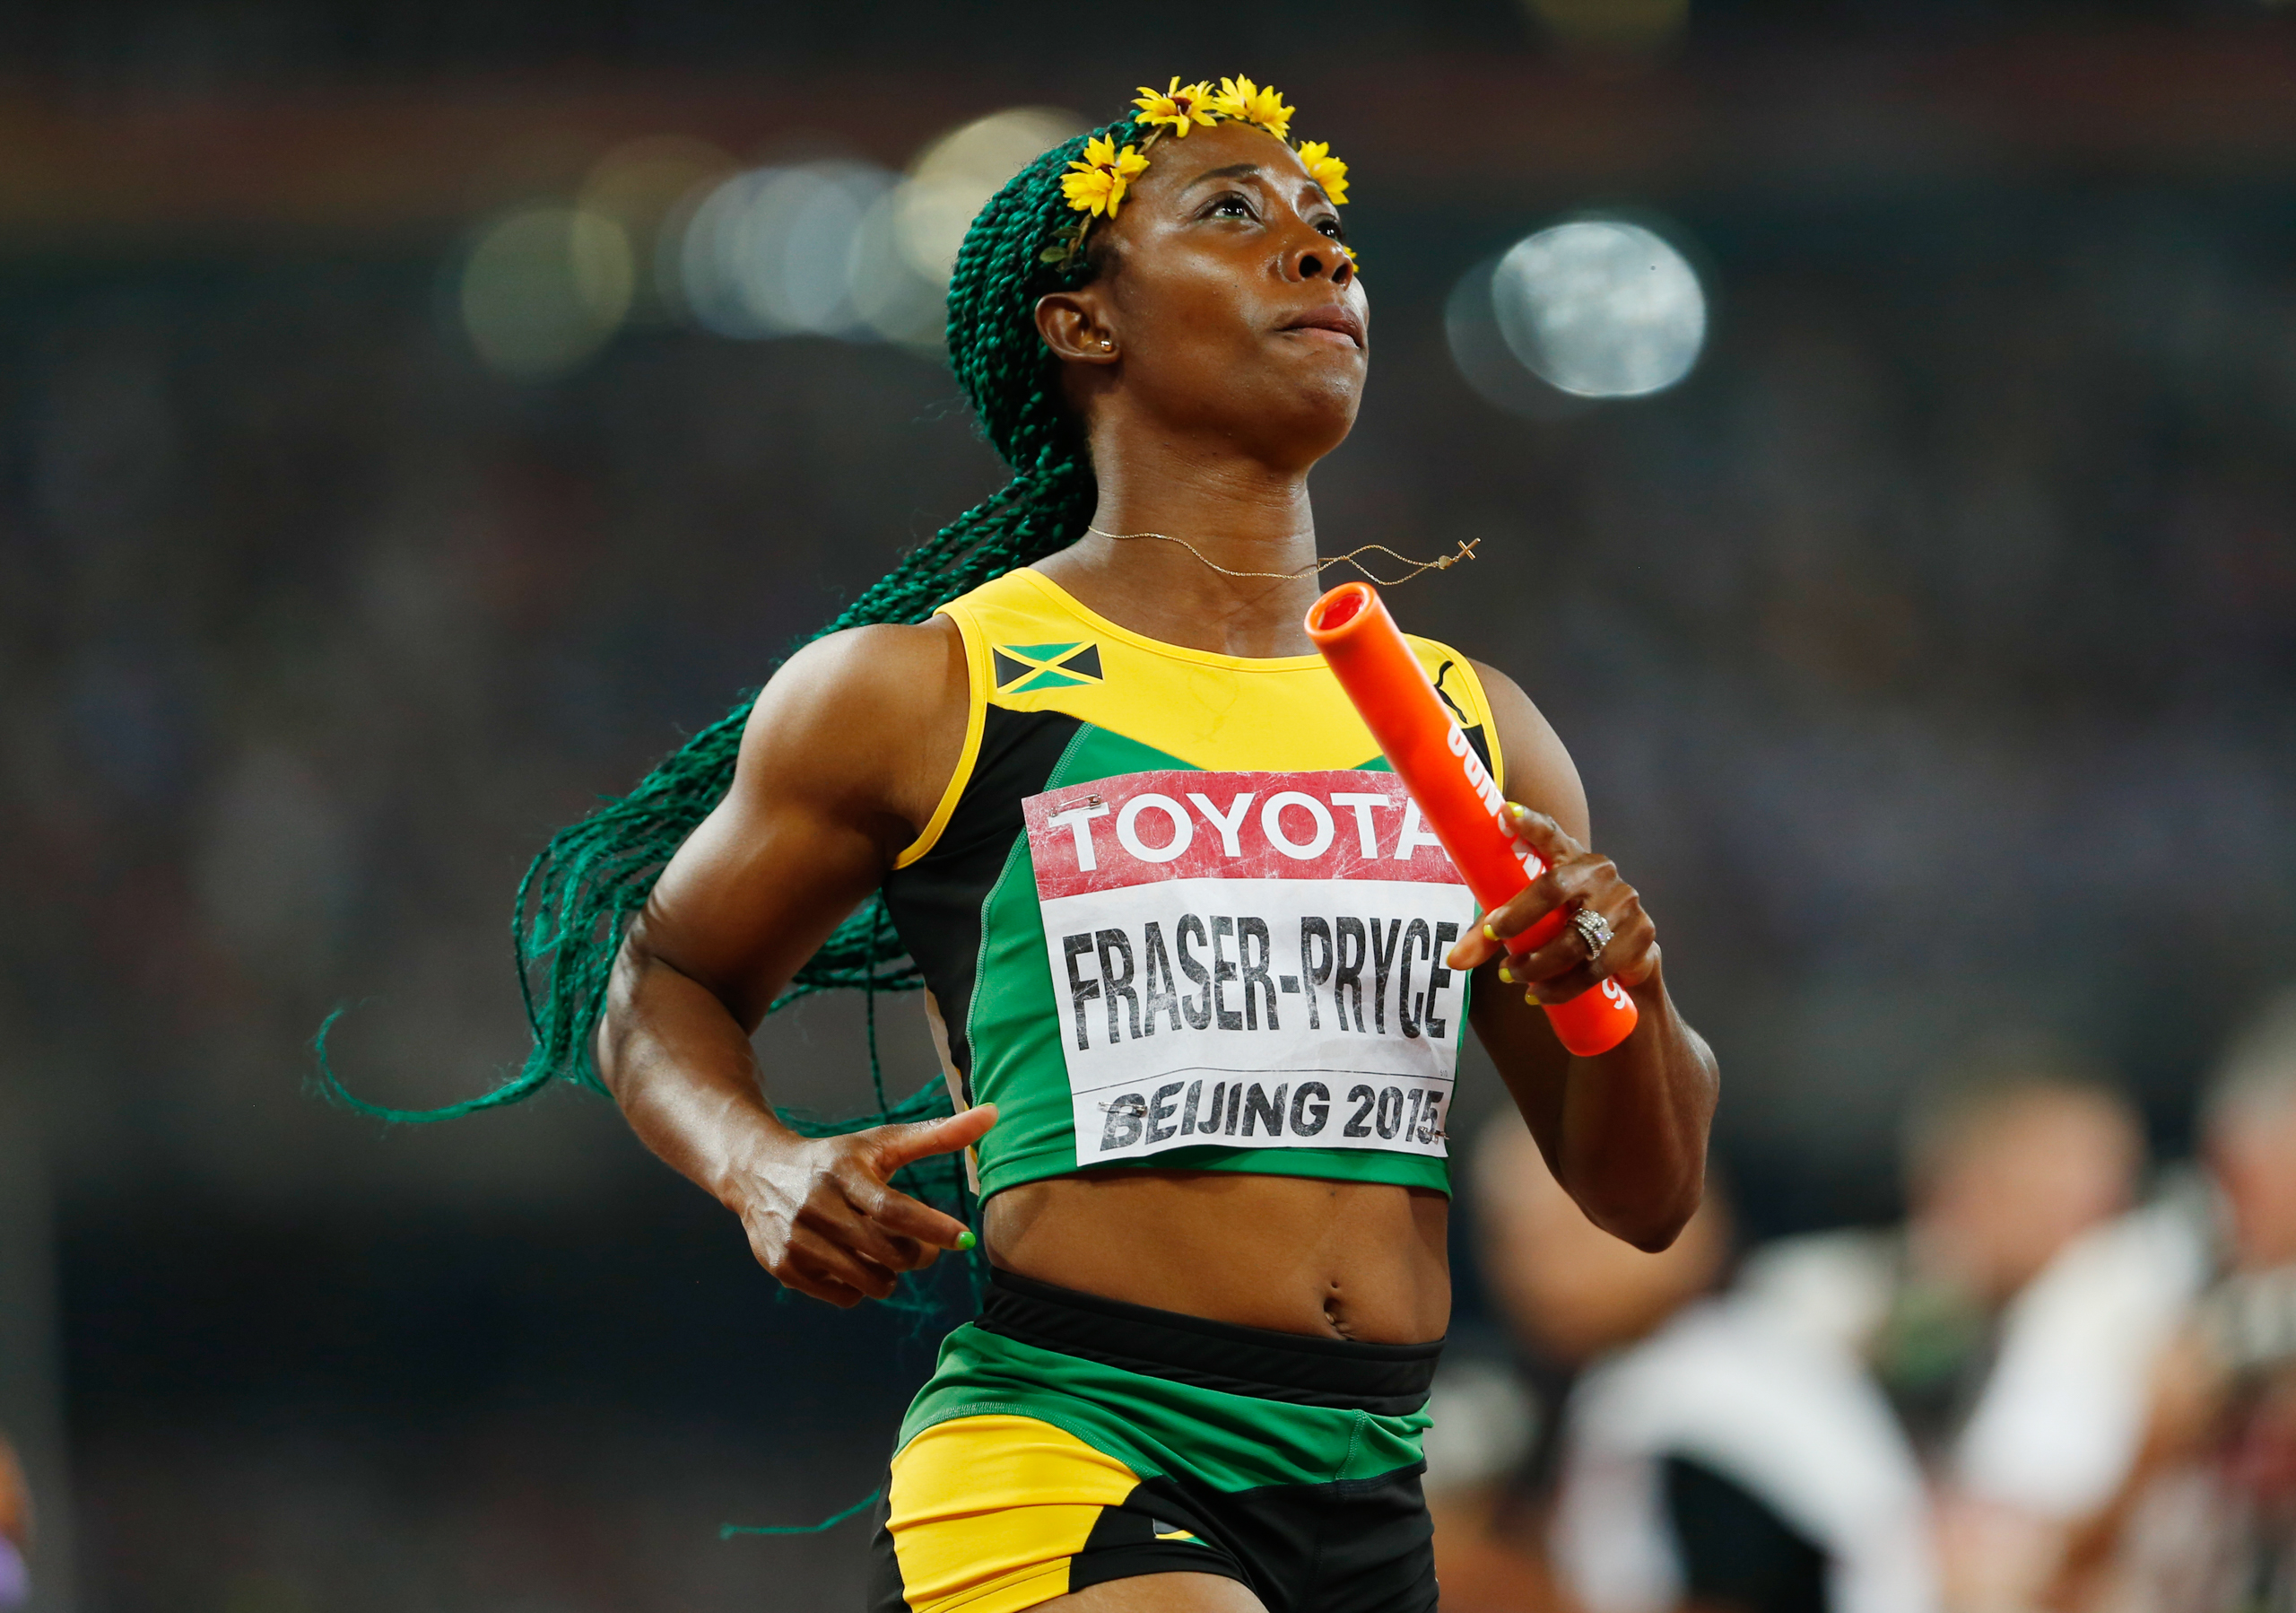 <strong>Shelly-Ann Fraser-Pryce, Track and Field, Jamaica</strong>Usain Bolt may steal Jamaica's sprinting spotlight, but Fraser-Pryce deserves her due: no woman has won three straight 100-m Olympic golds, a feat Fraser-Pryce can accomplish in Rio.